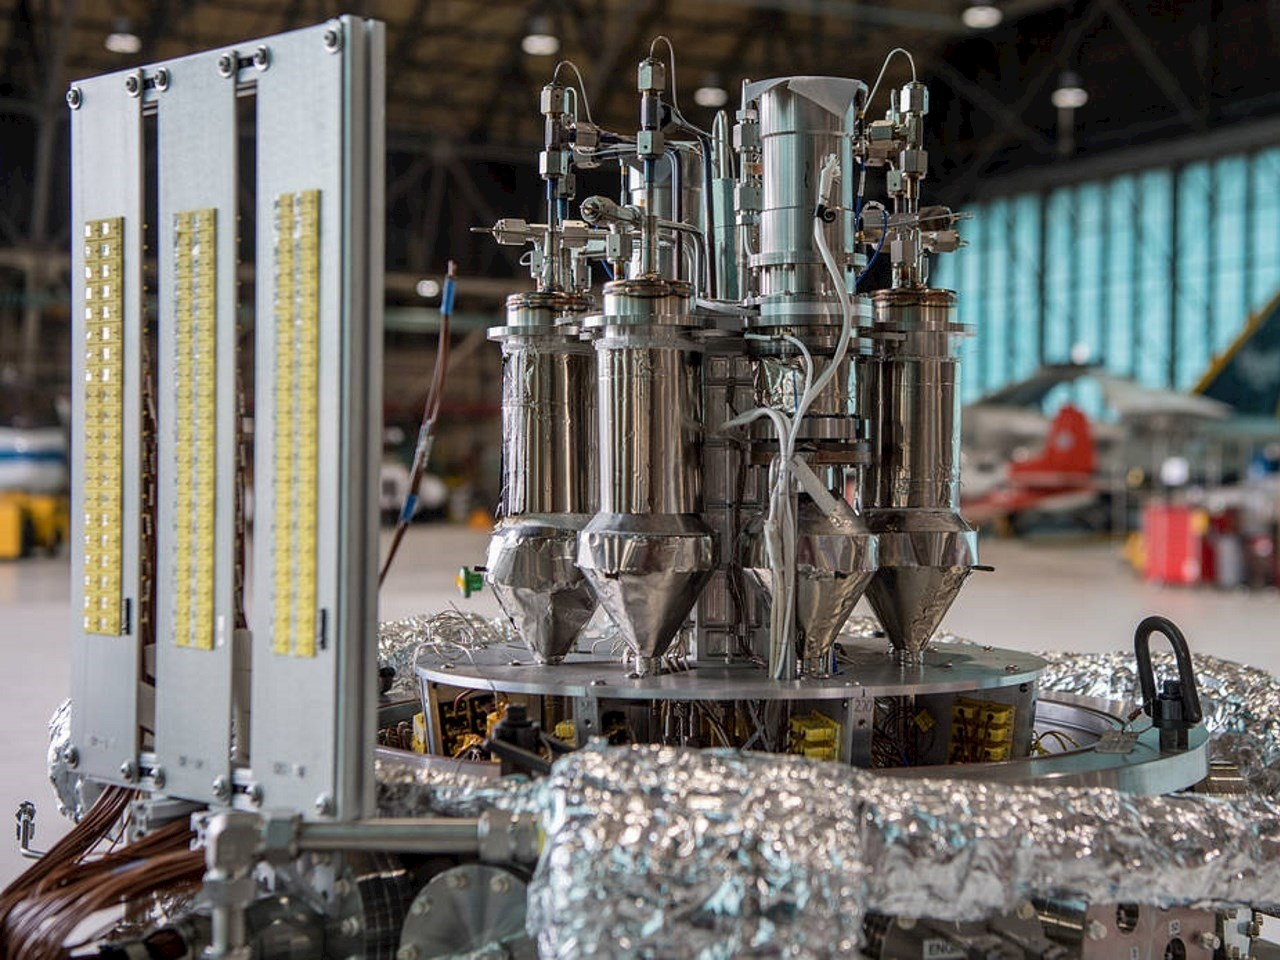 The Kilopower prototype includes a Stirling power conversion system